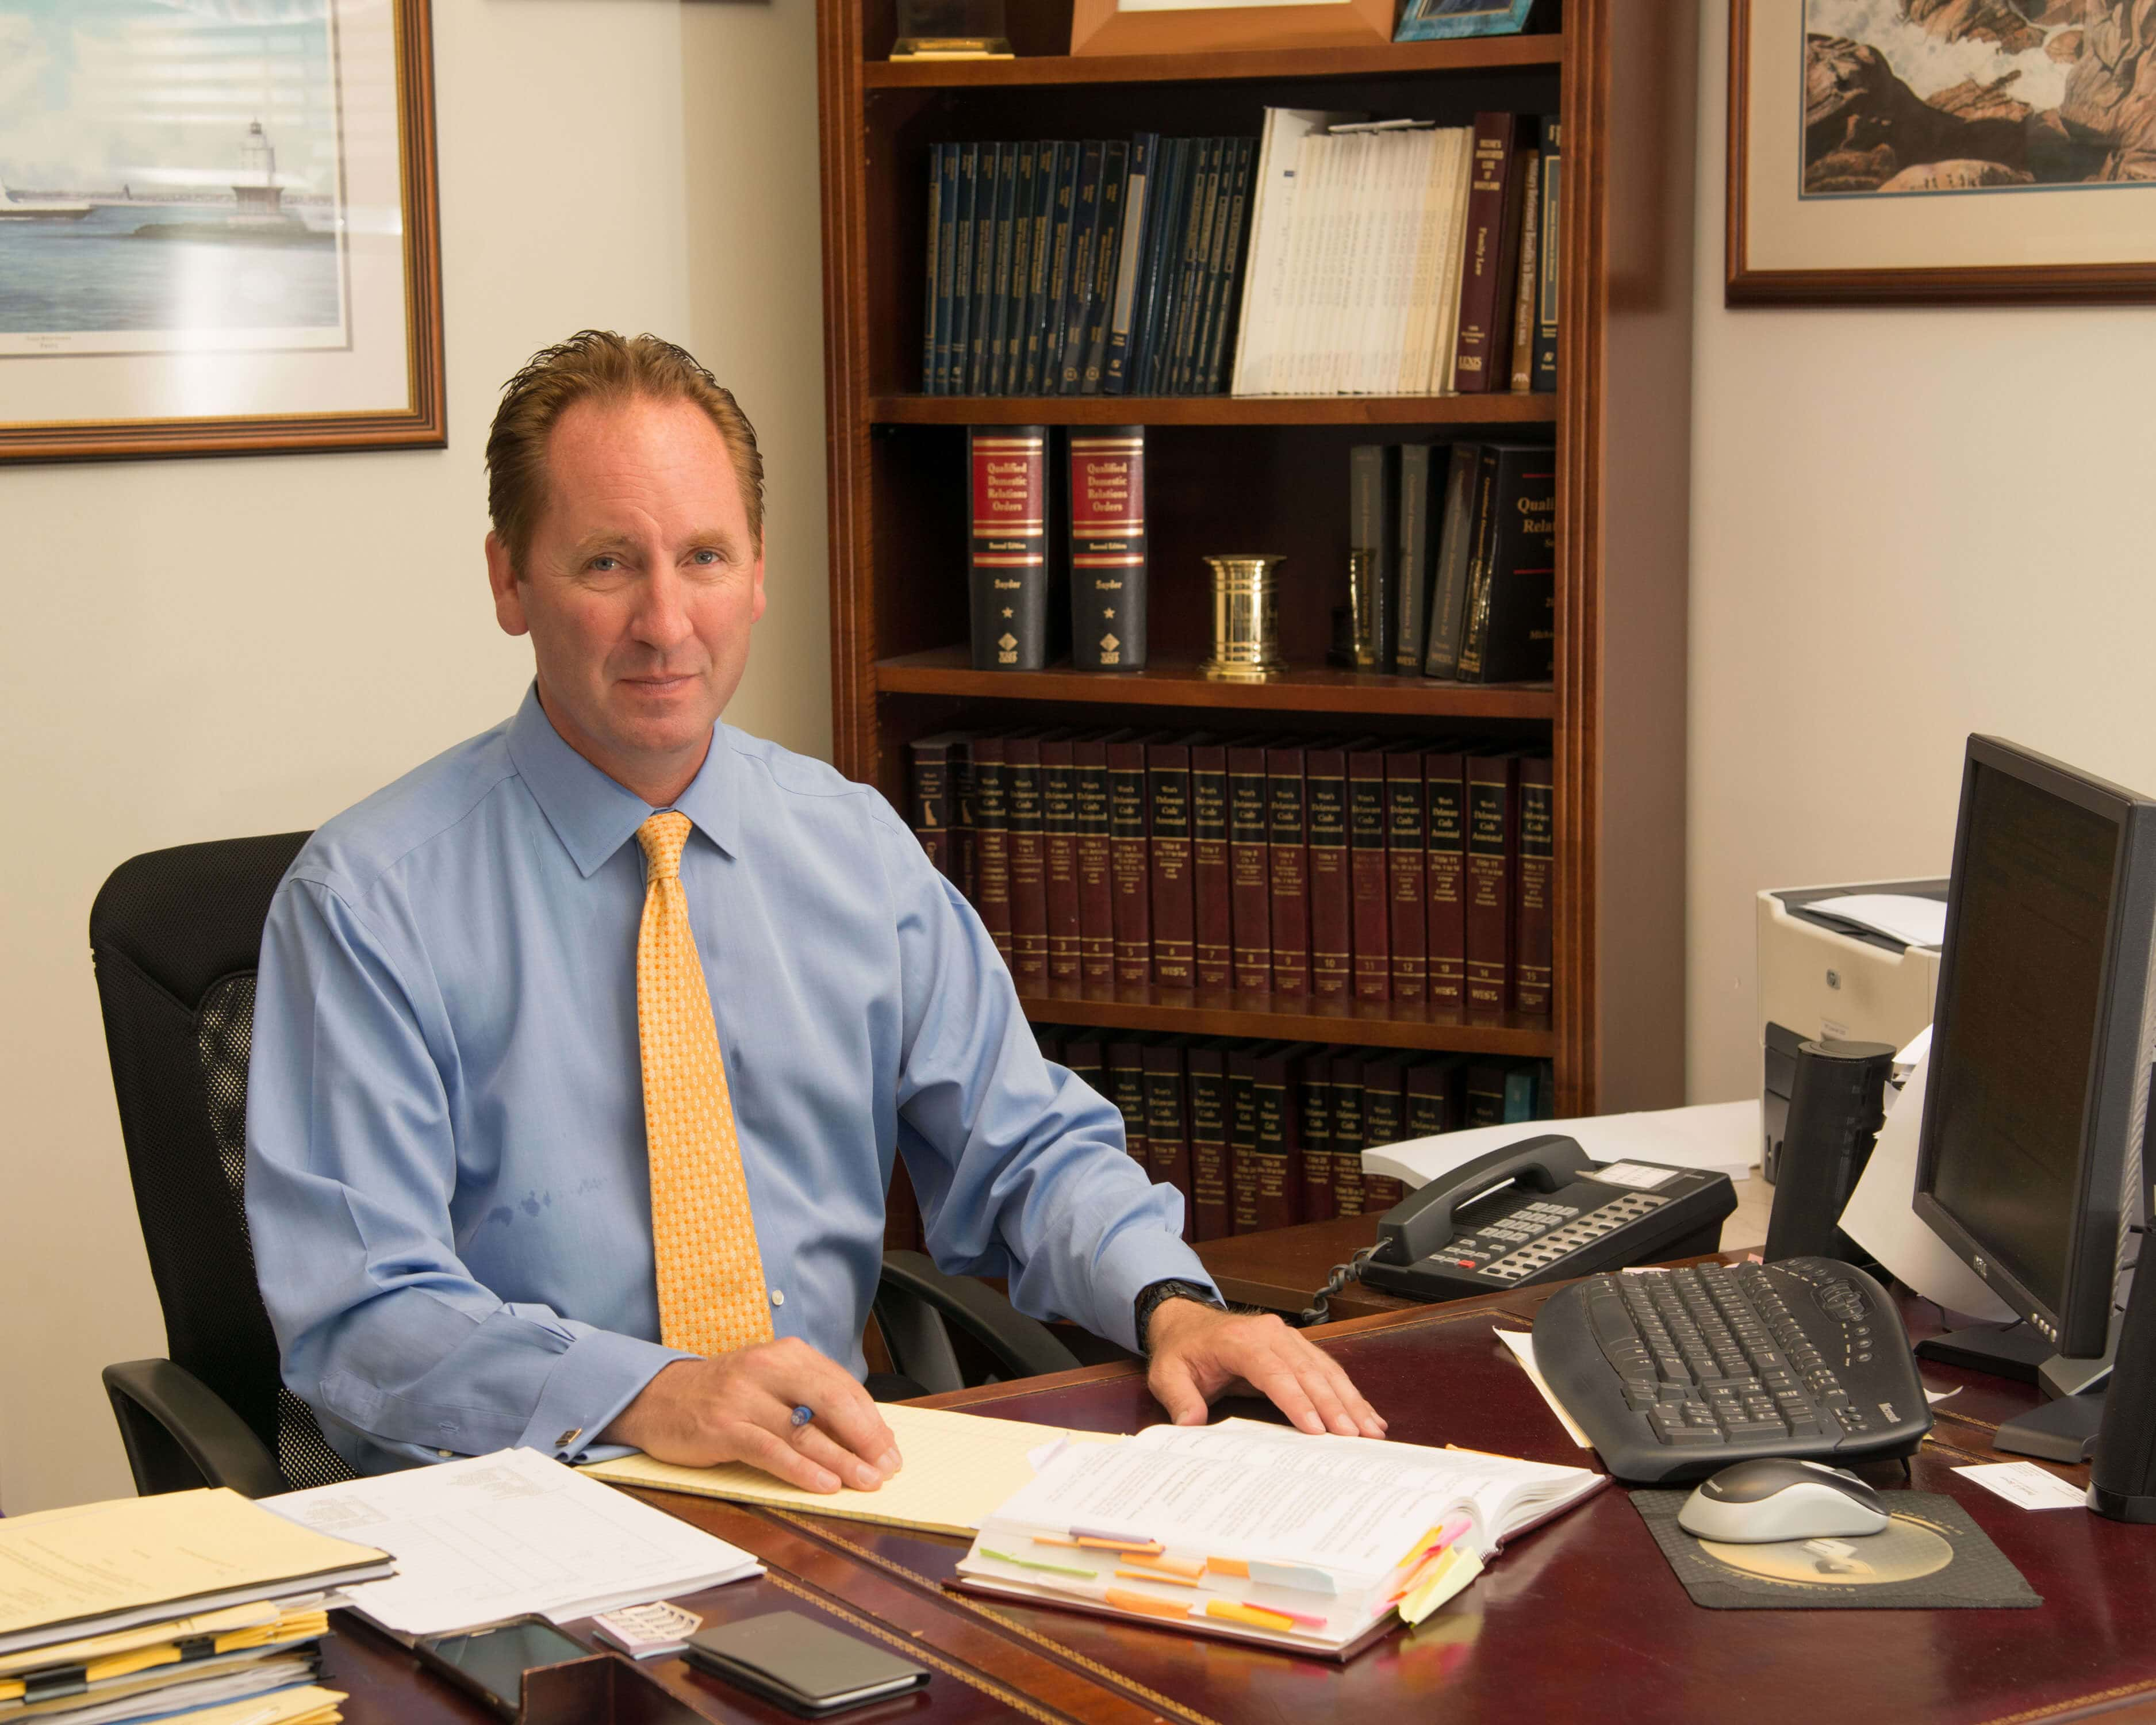 Expert Family Lawyer in Seaford, DE, Tom Gay